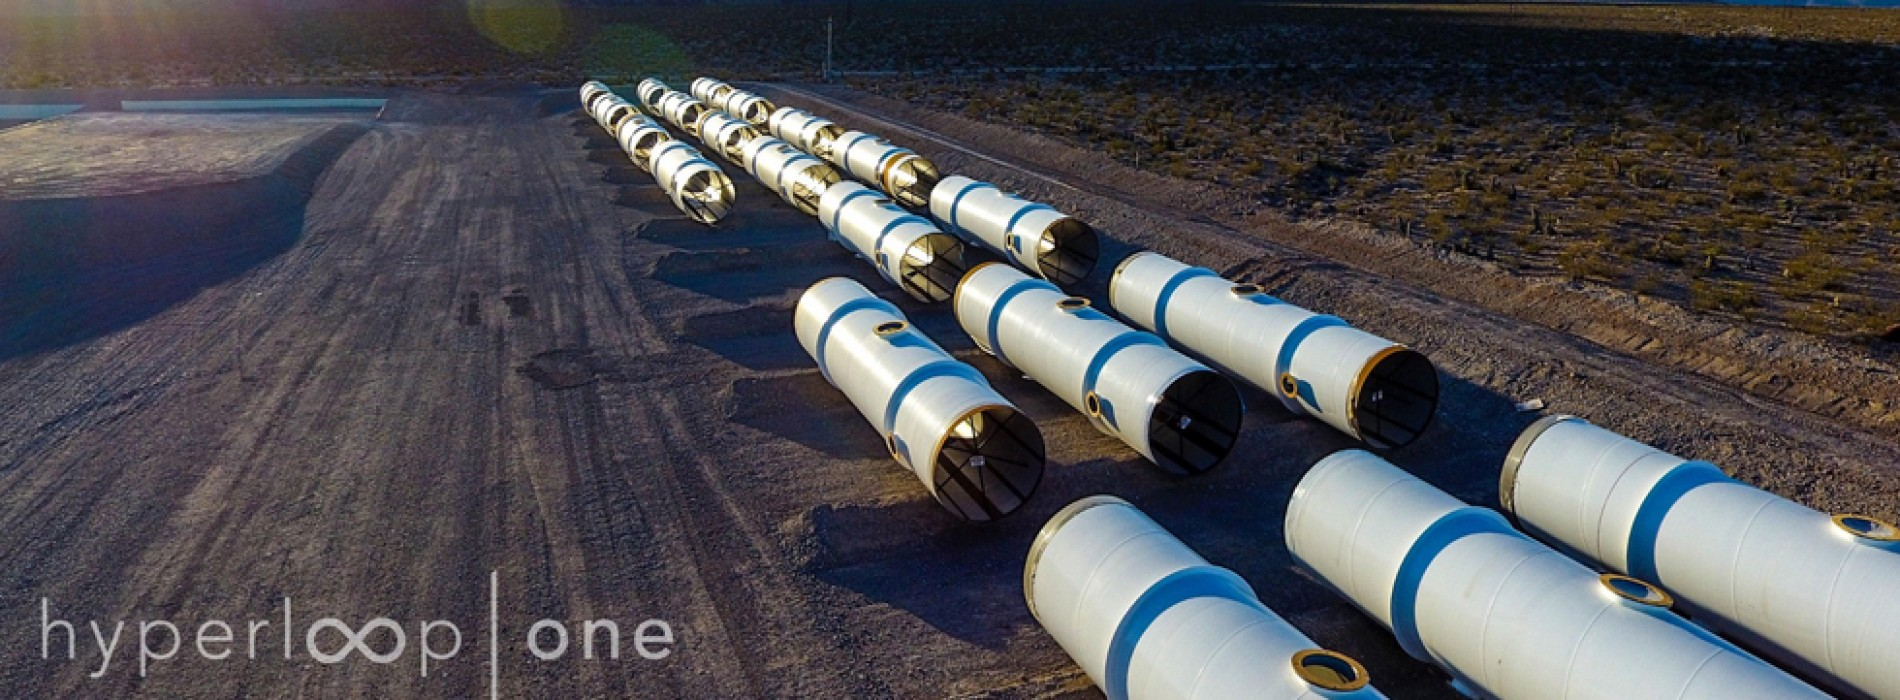 Hyperloop One CEO says that they are yet to receive investment proposals from India